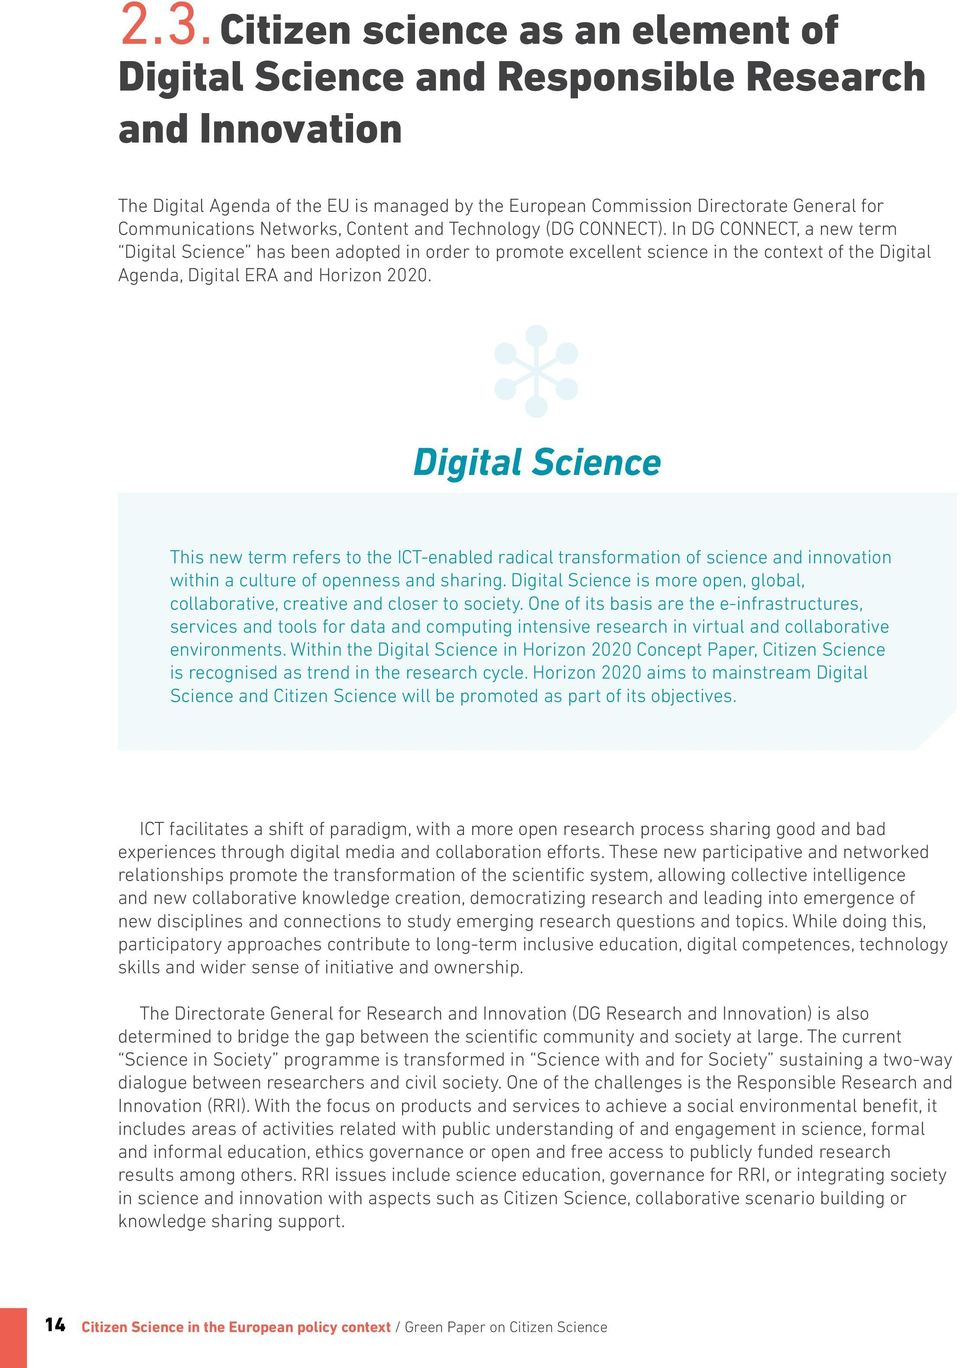 In DG CONNECT, a new term Digital Science has been adopted in order to promote excellent science in the context of the Digital Agenda, Digital ERA and Horizon 2020.